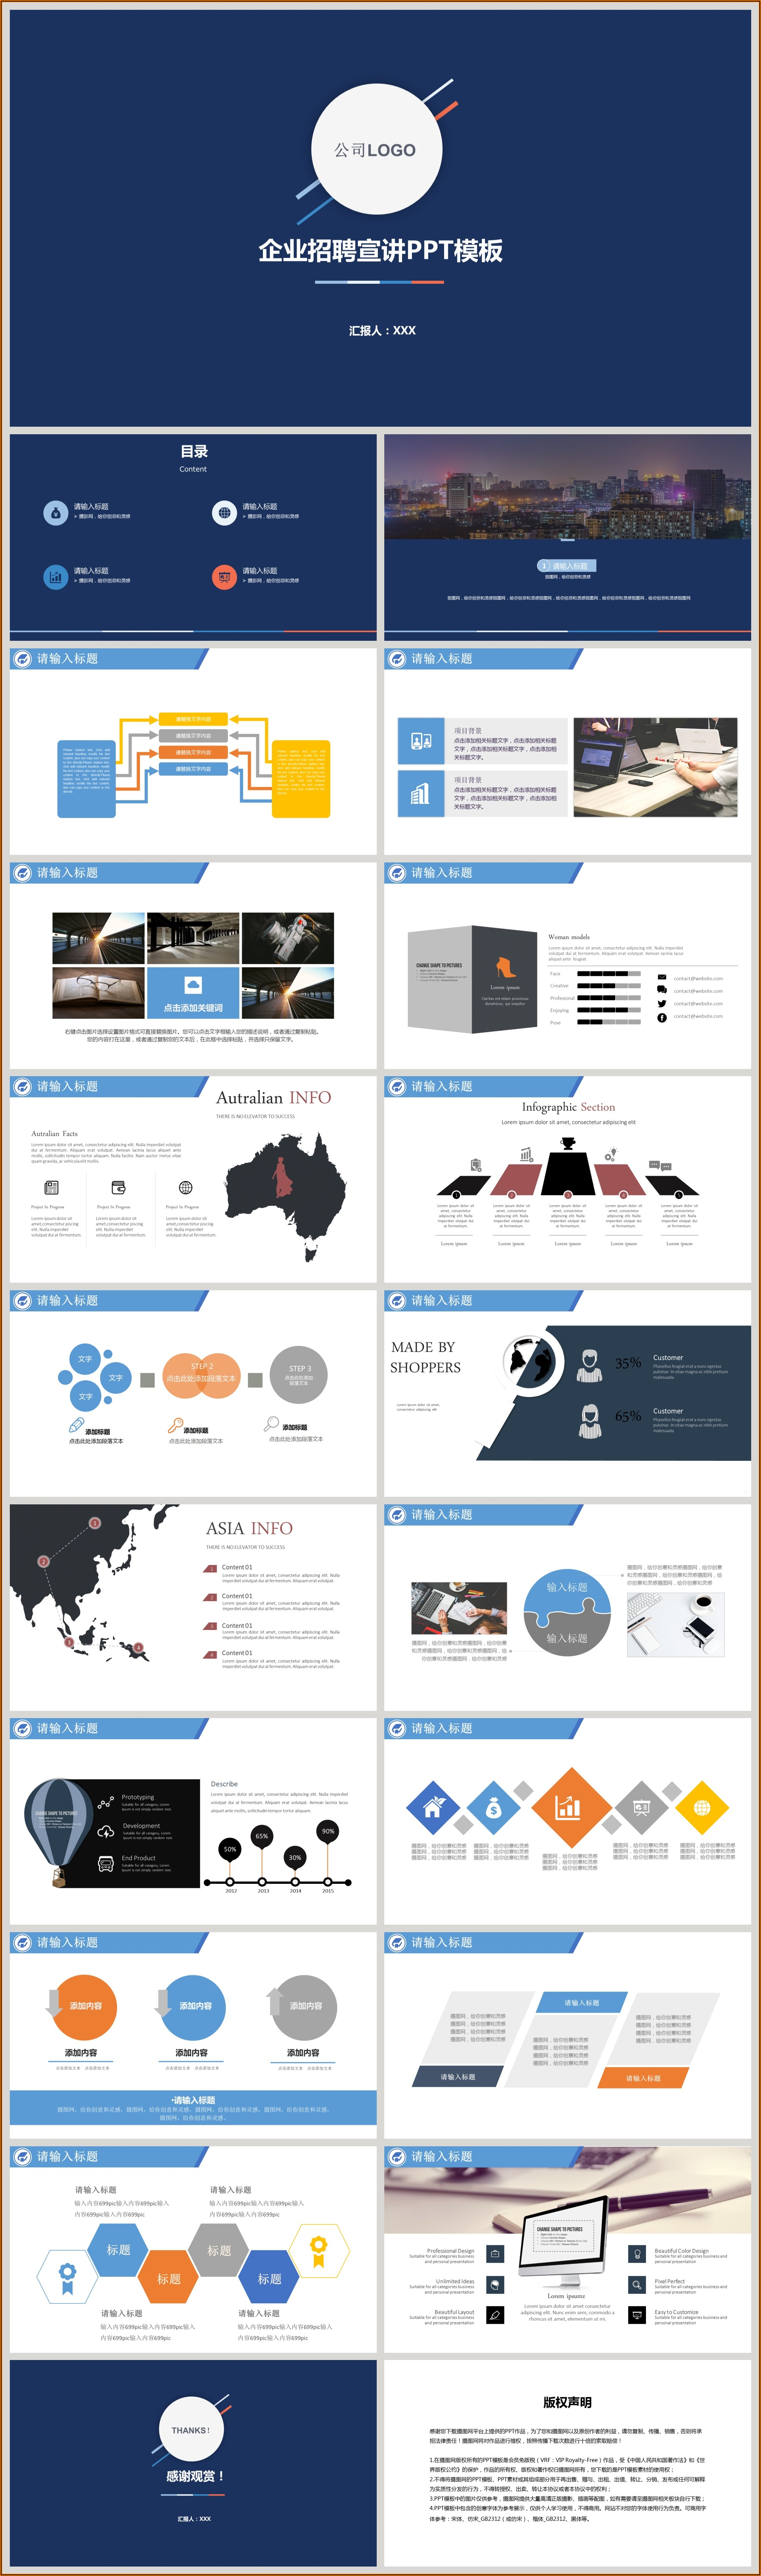 Business Roadmap Ppt Template Free